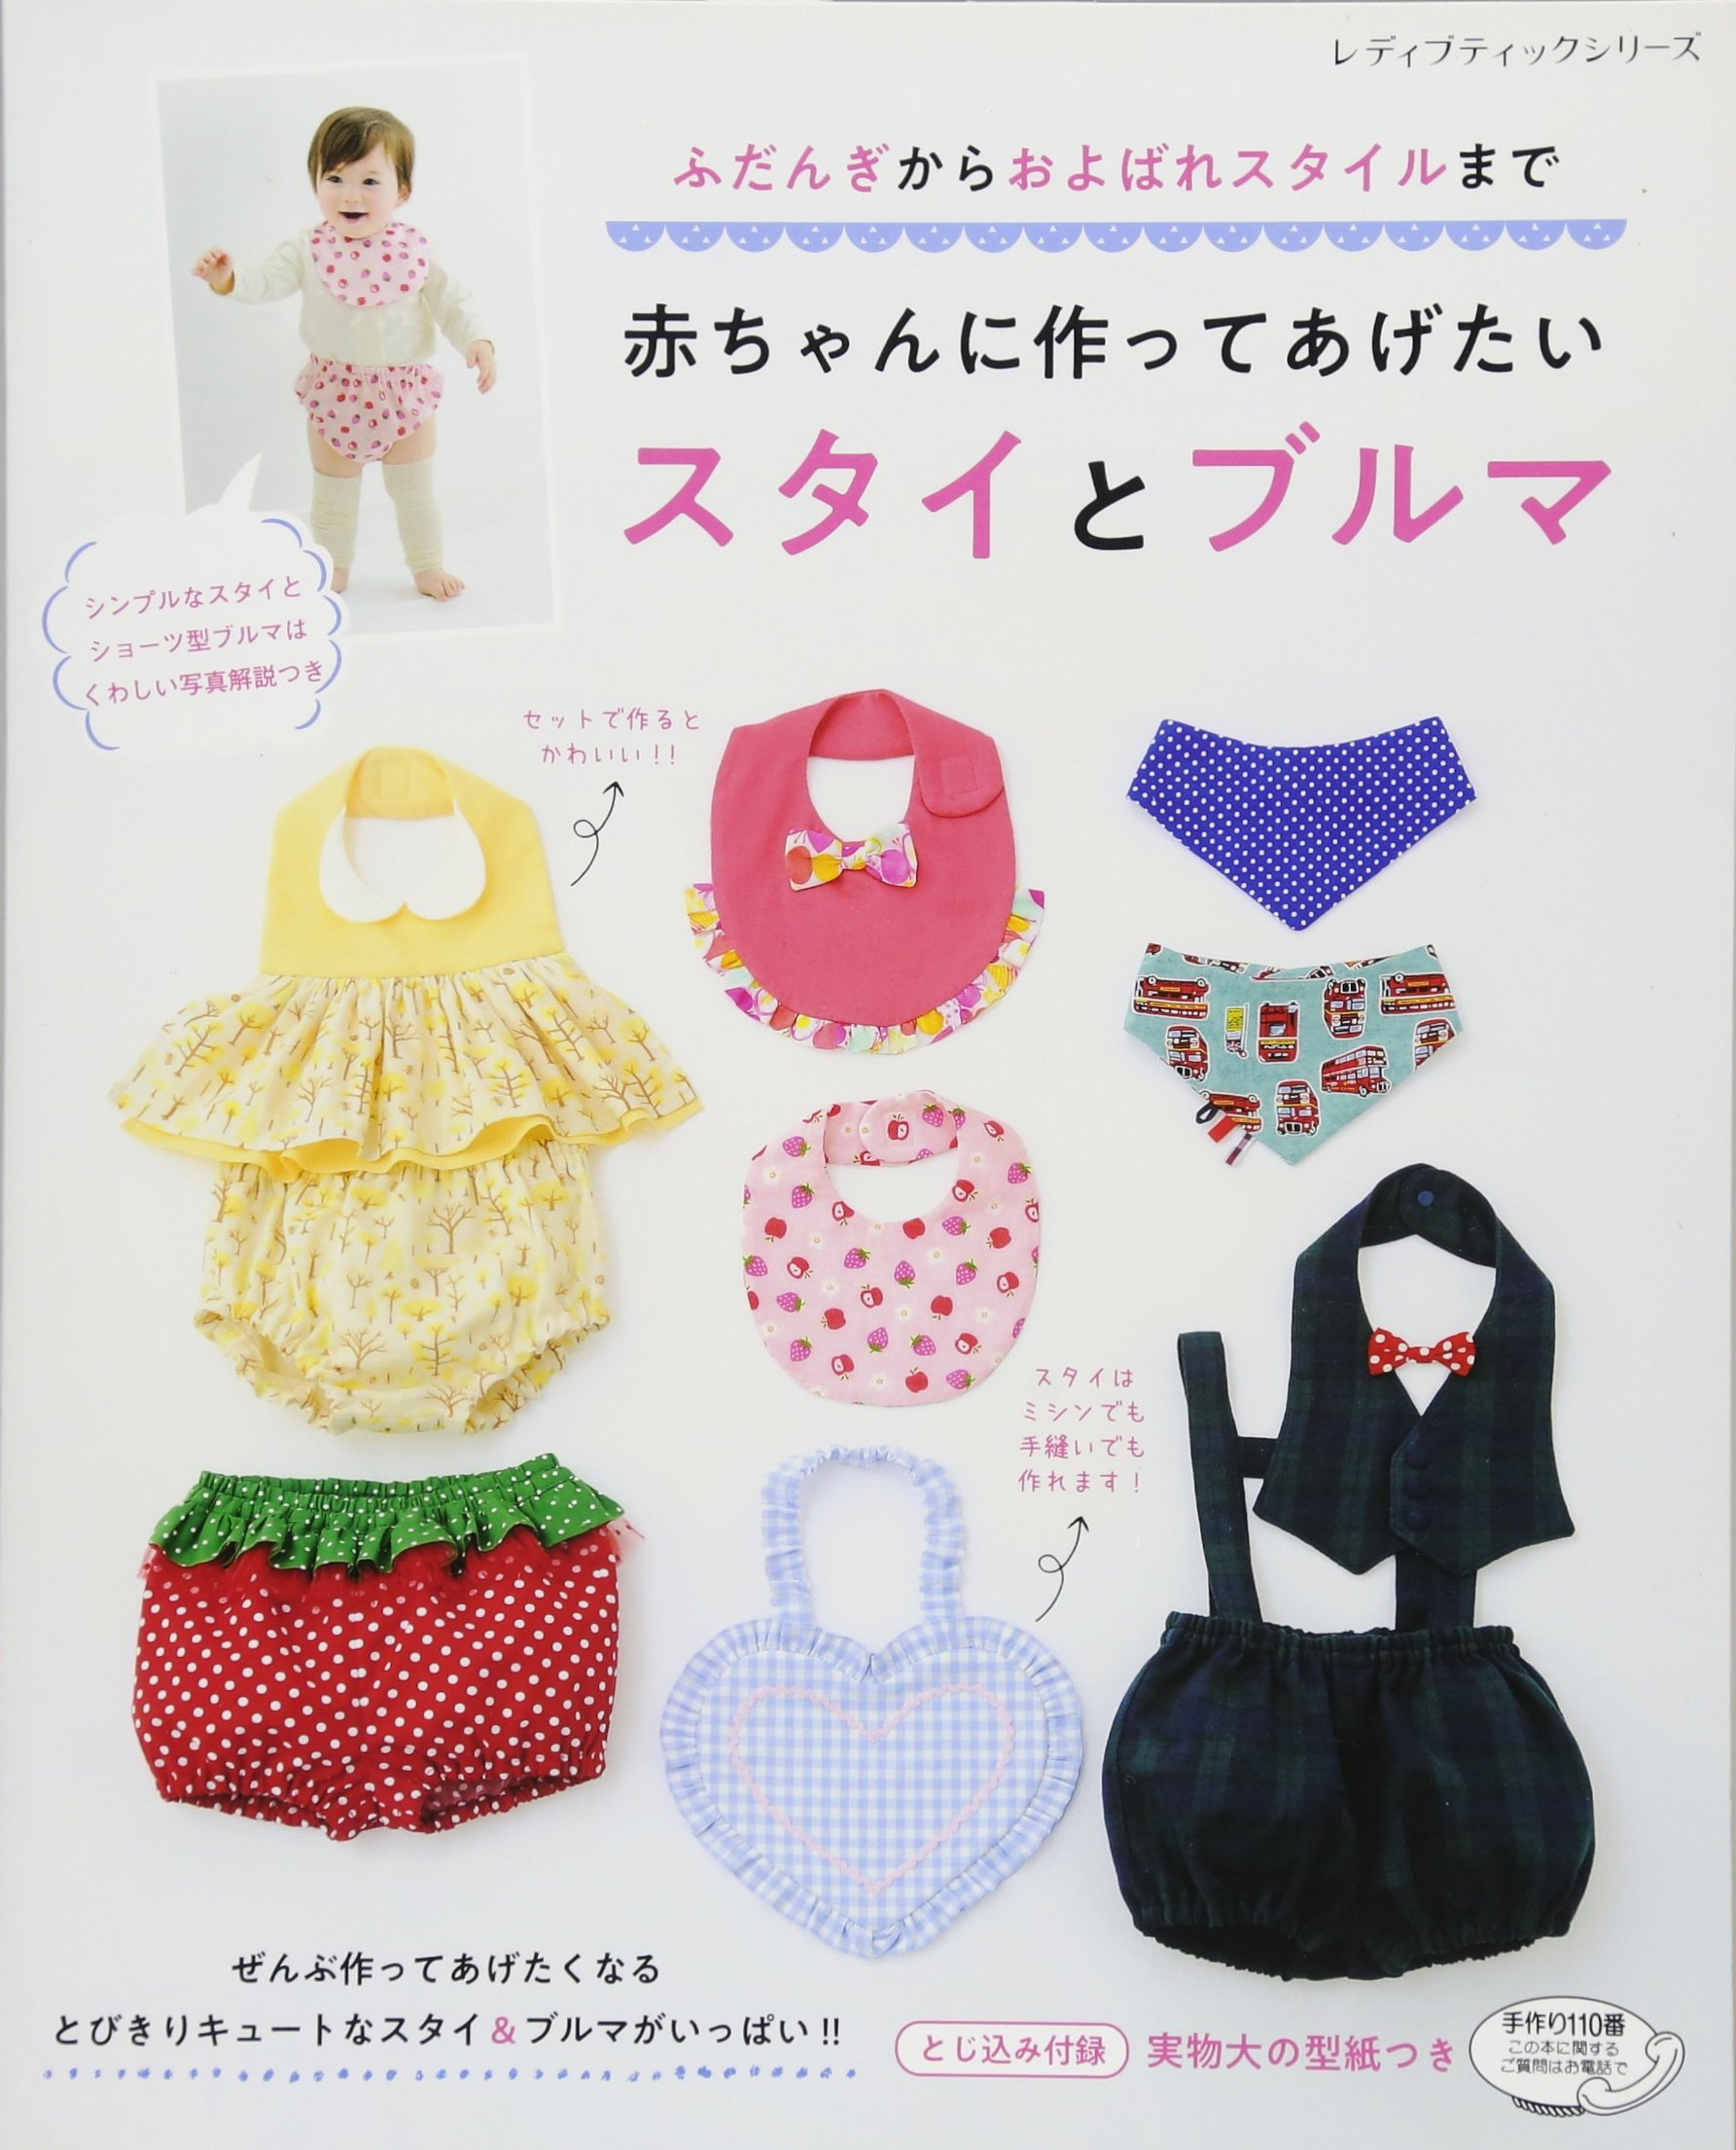 I want to make the baby style and bloomers